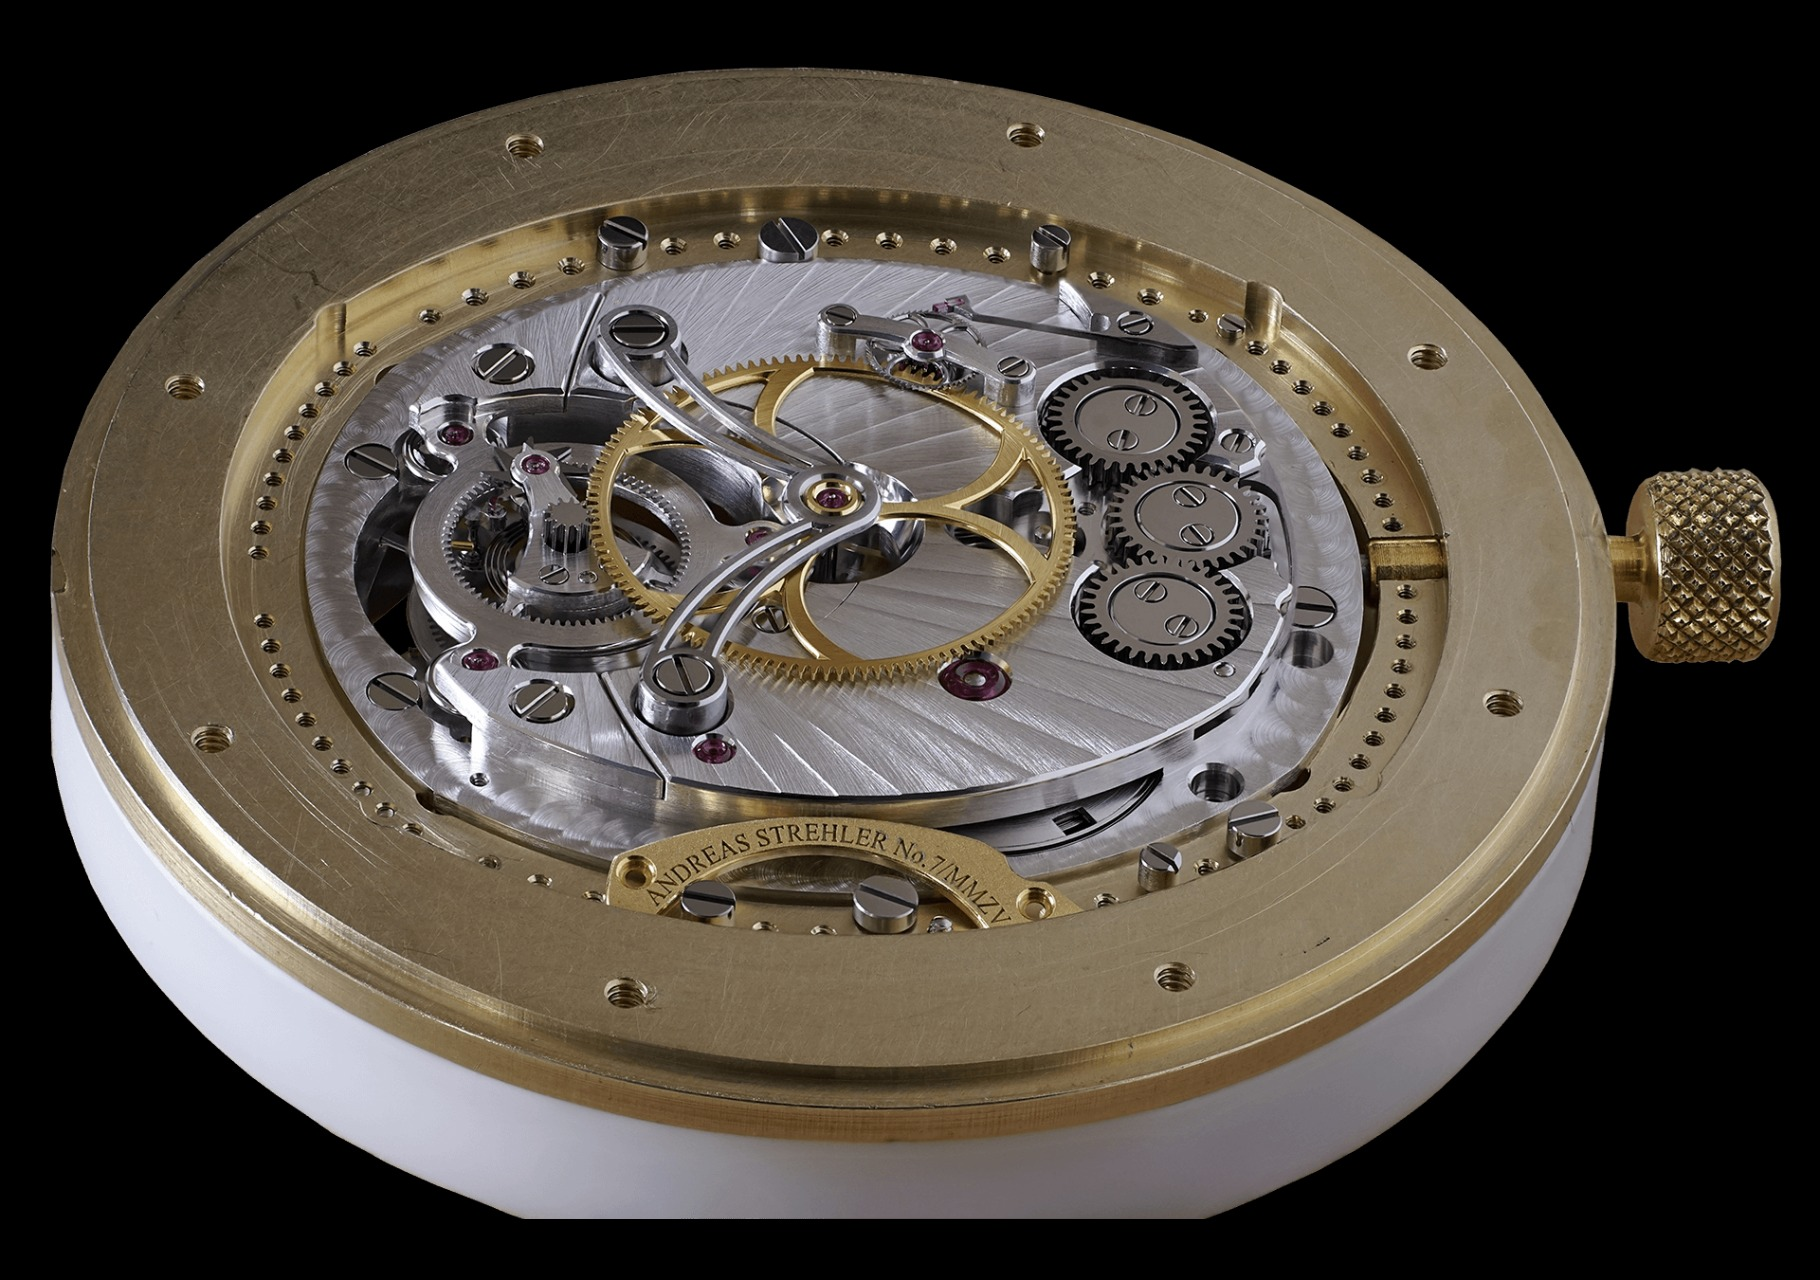 Andreas Strehler toubillon watch movemnet